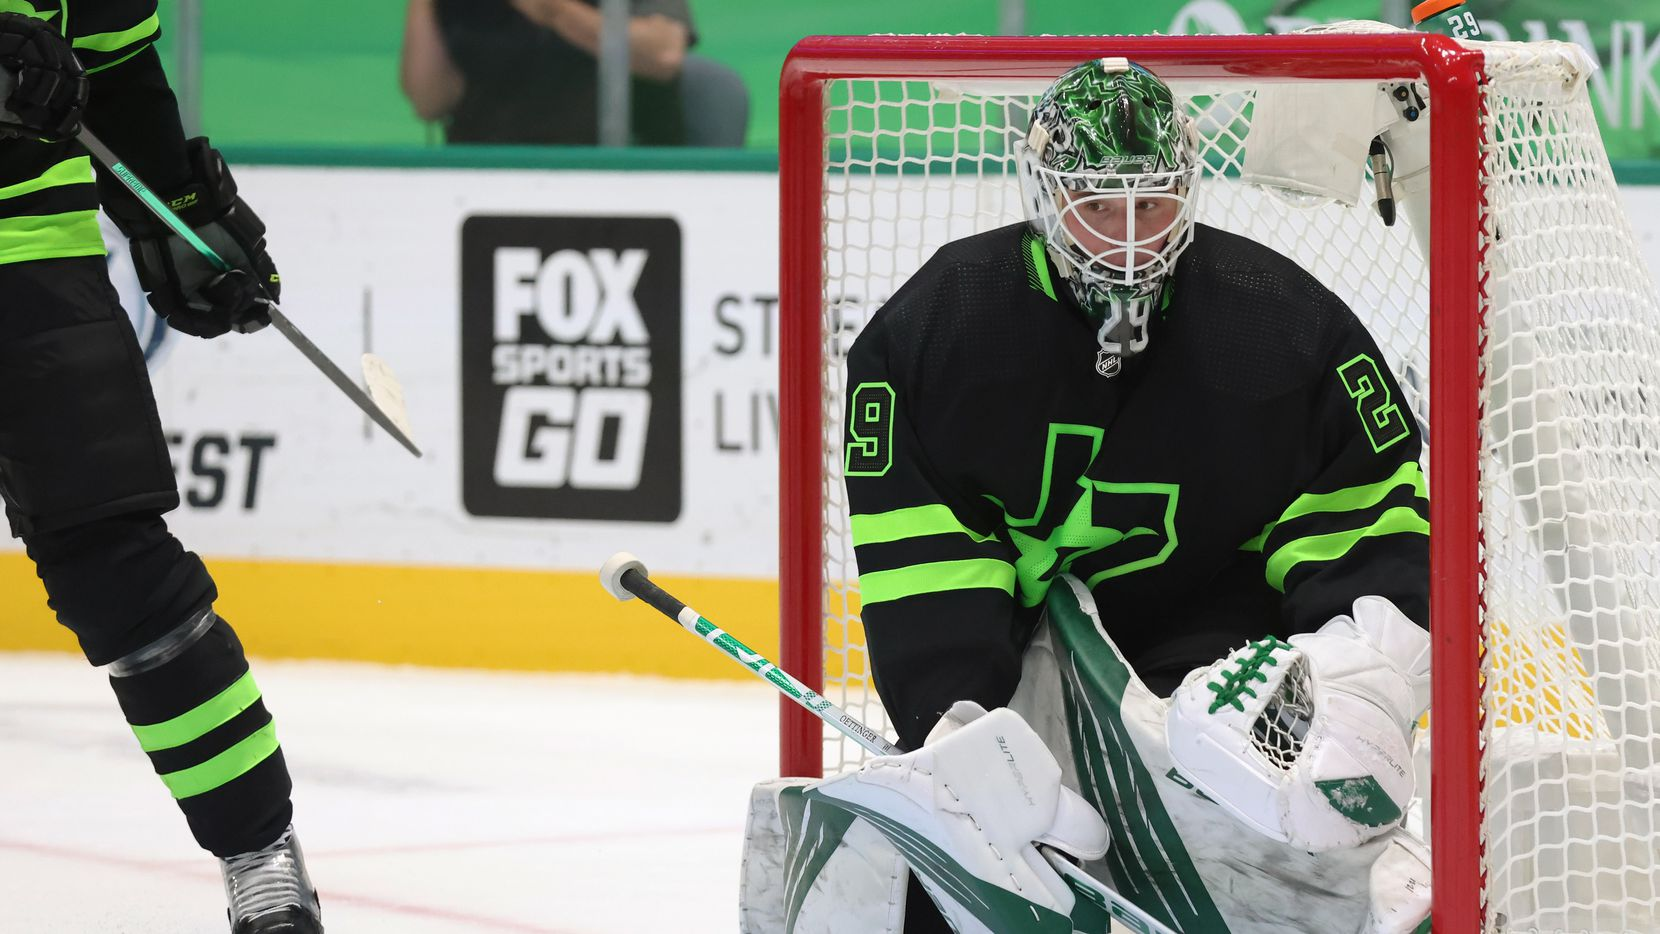 Dallas Stars goaltender Jake Oettinger (29) watches as the puck rolls in a game against the Detroit Red Wings during the second period of play at American Airlines Center on Thursday, January 28, 2021in Dallas.